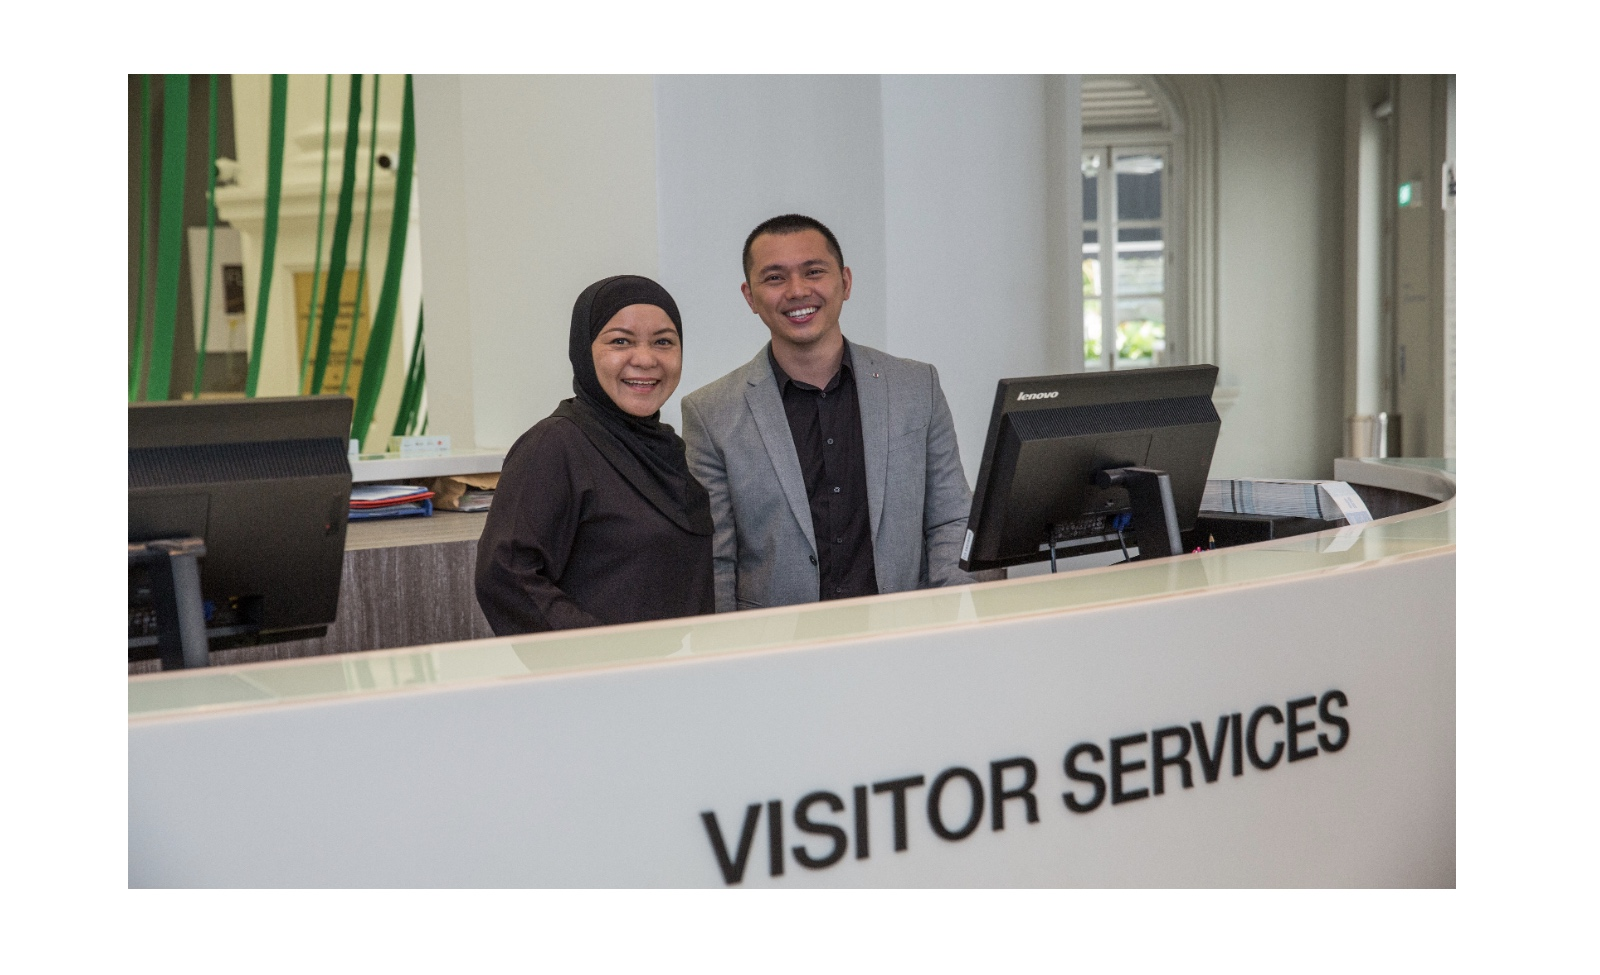 Accessibilty Banner, Visitor Services